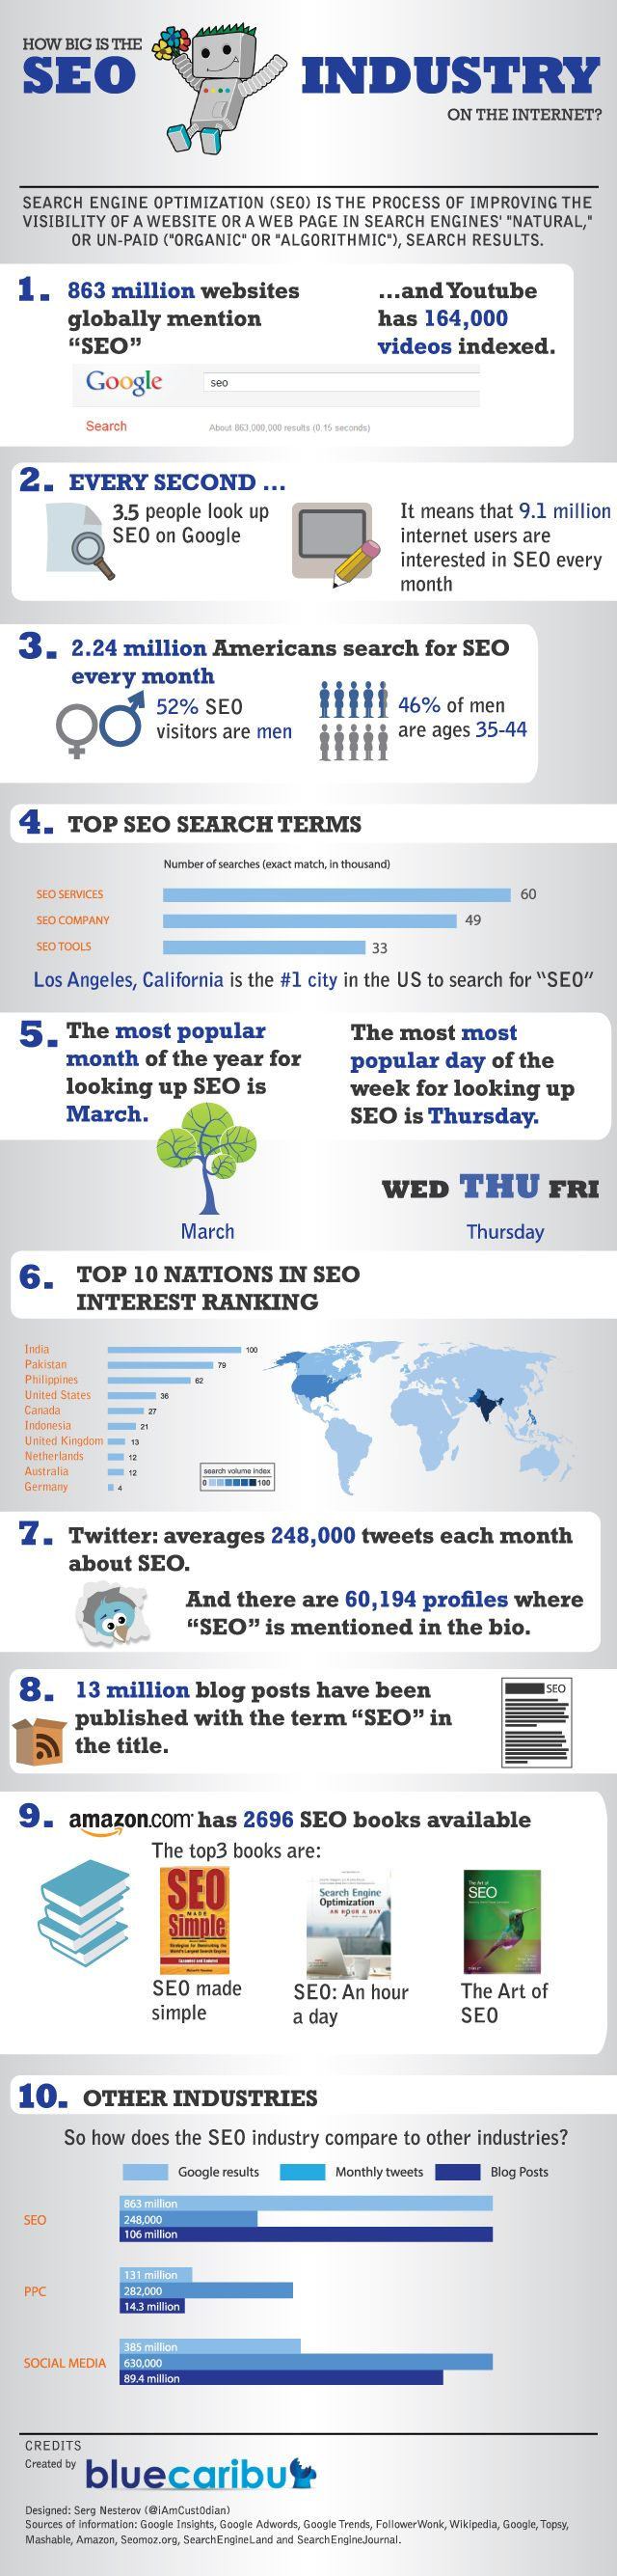 How Big is The #SEO Industry? #infographic